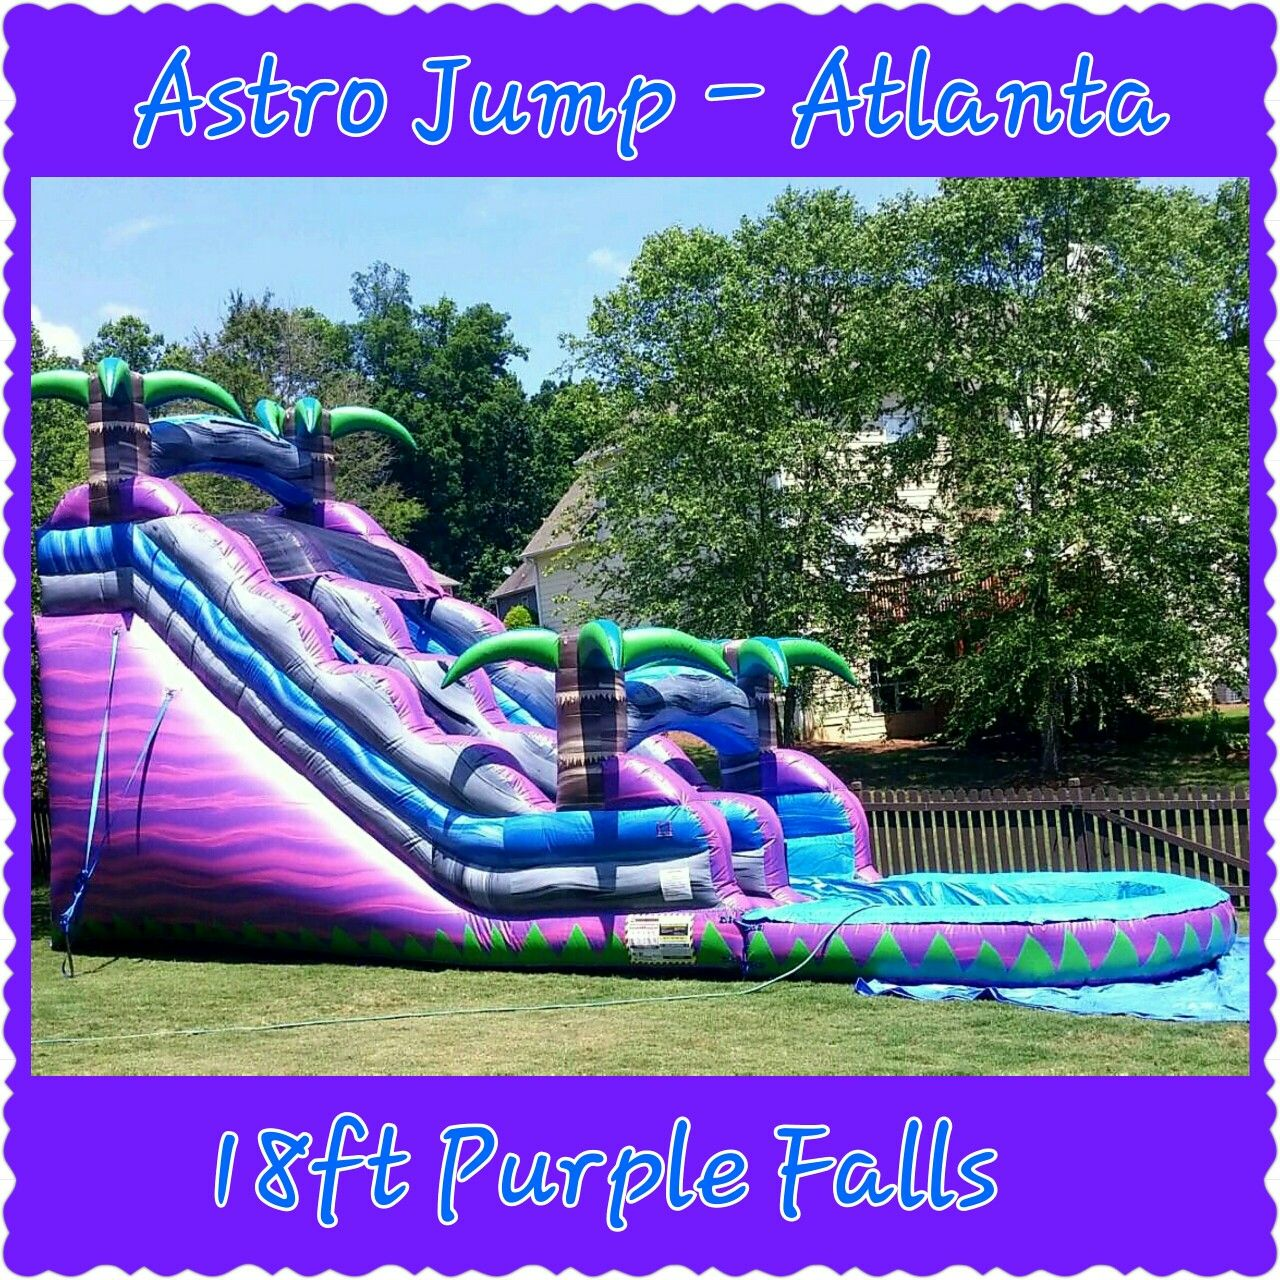 18ft Purple Falls Inflatable Waterslide Rentals from Astro ...